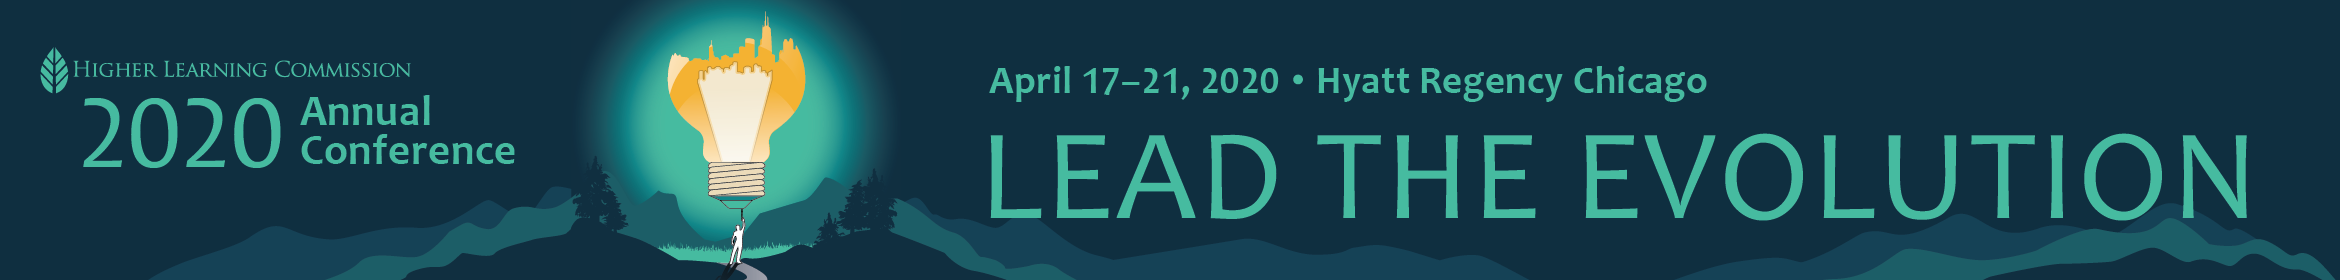 2020 HLC Annual Conference Main banner